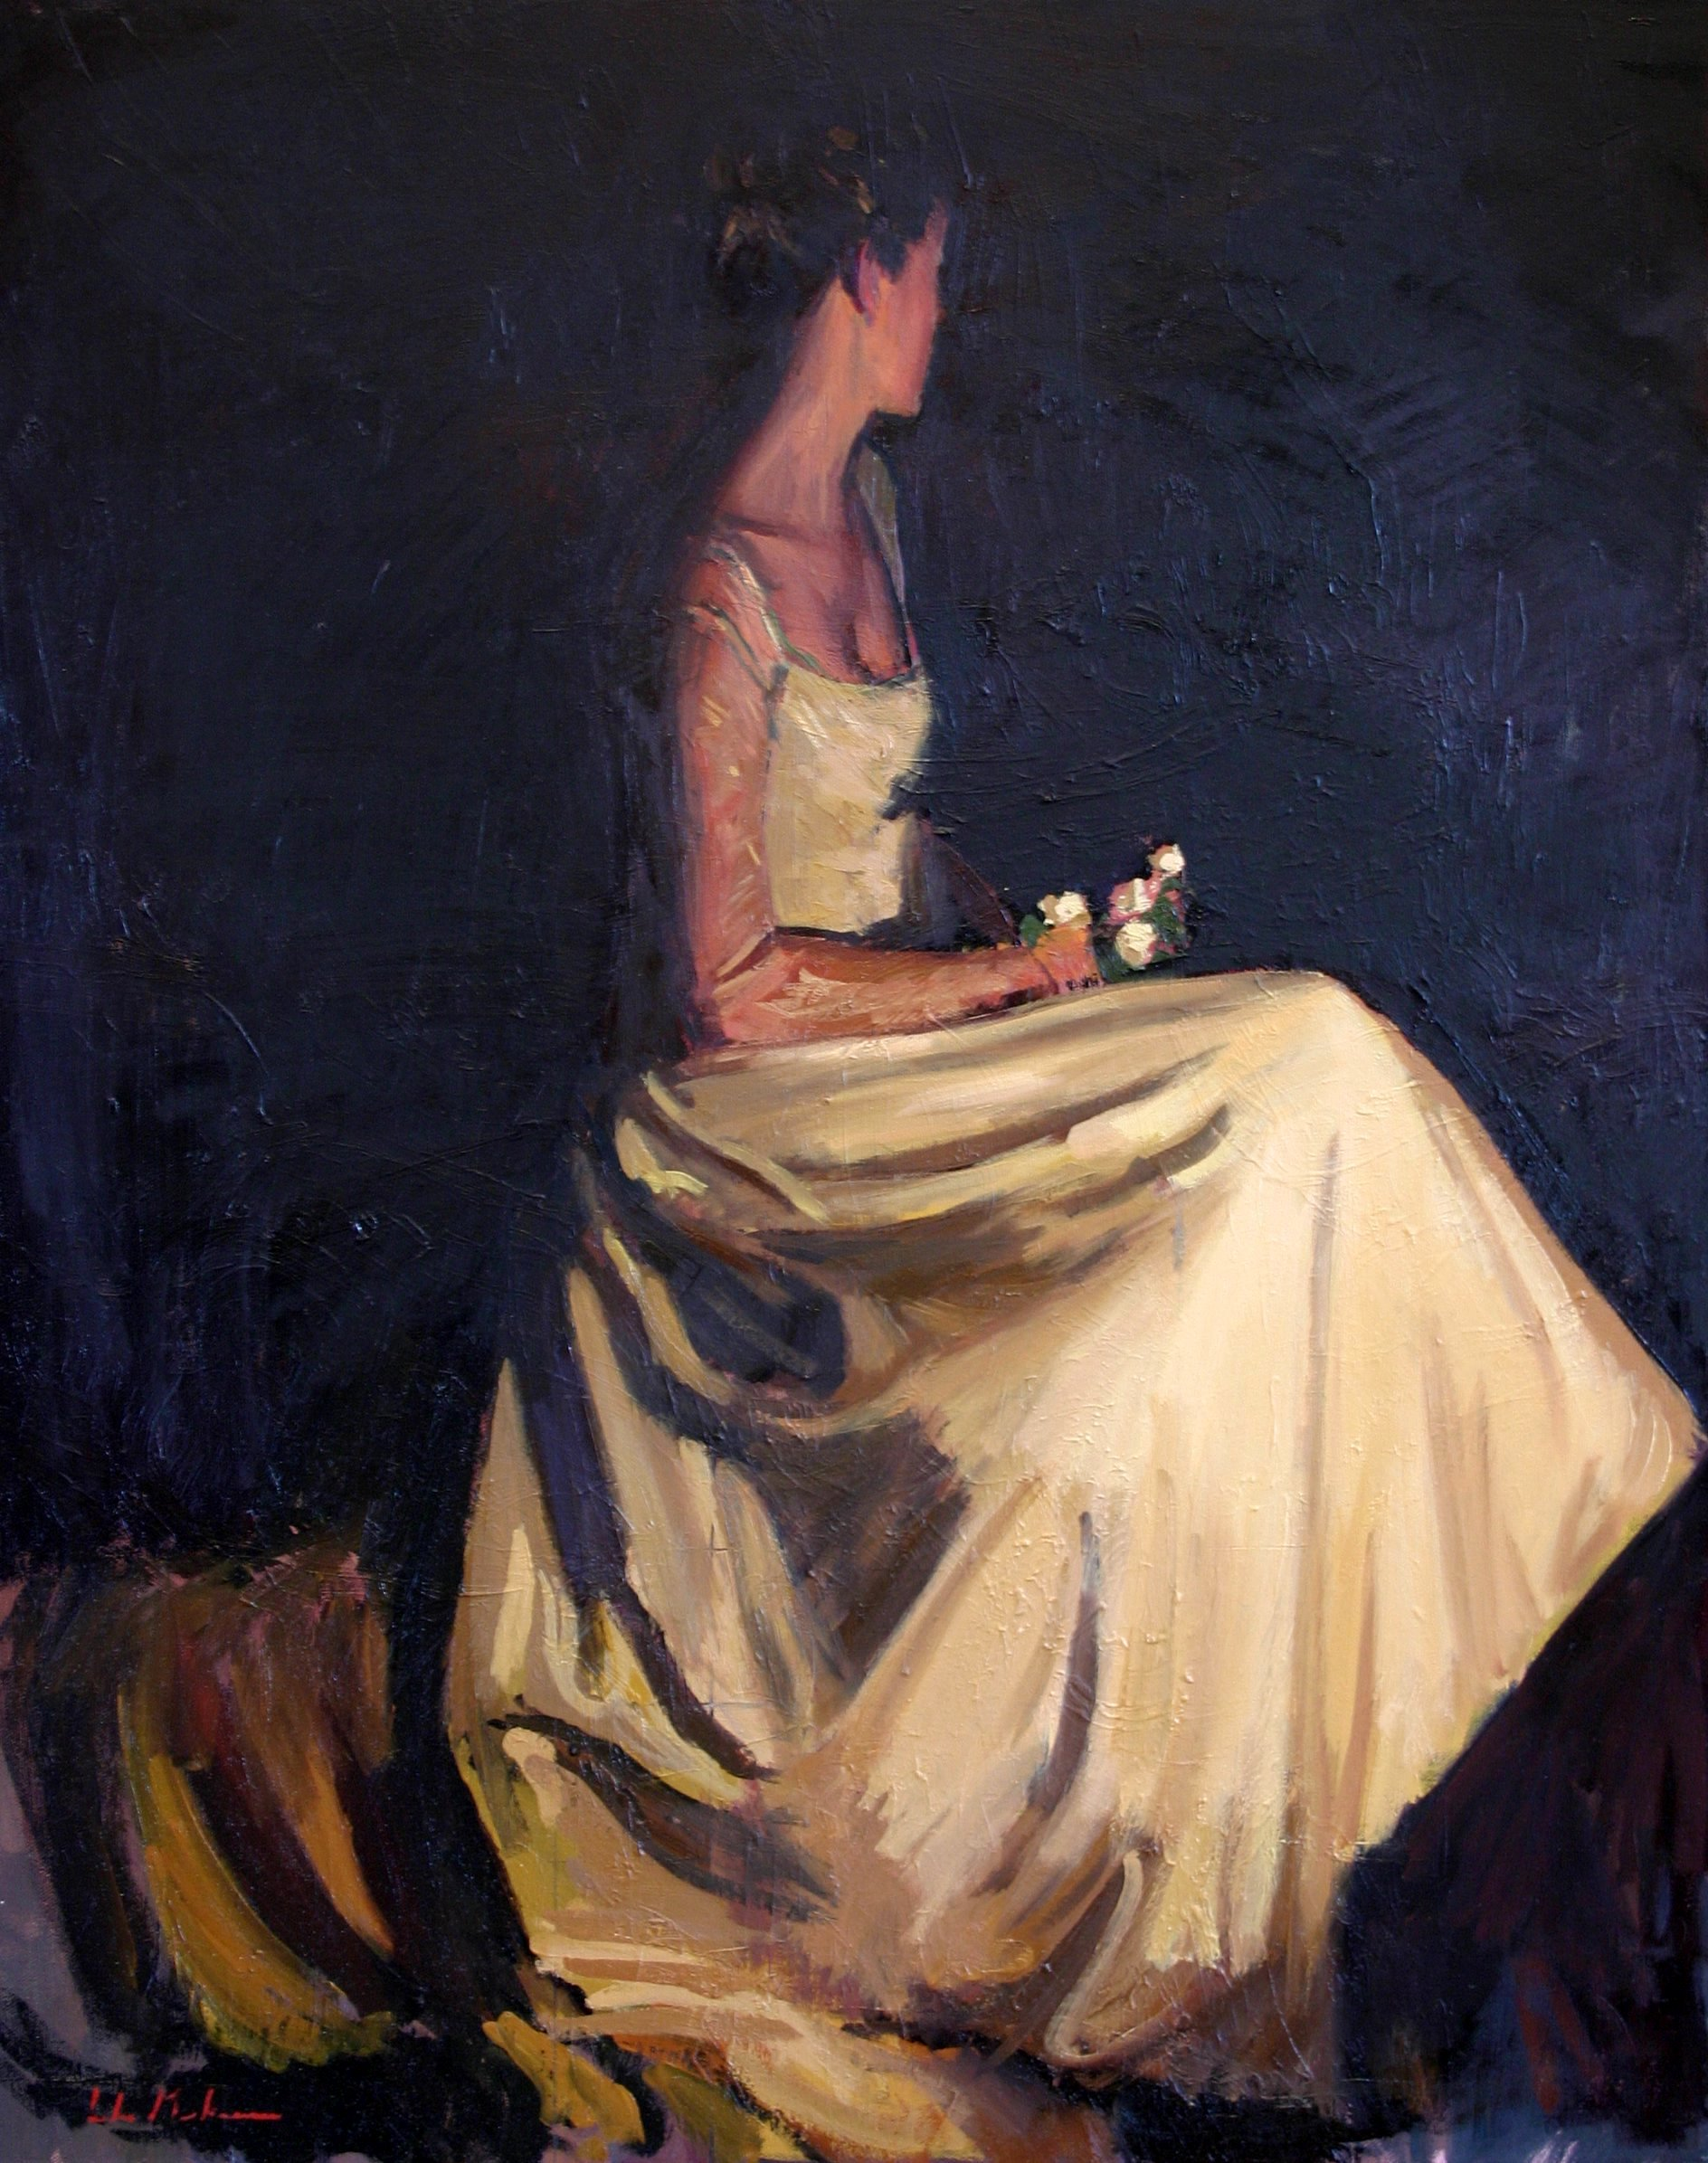 The Bride 2006 Oil on canvas 30x24in